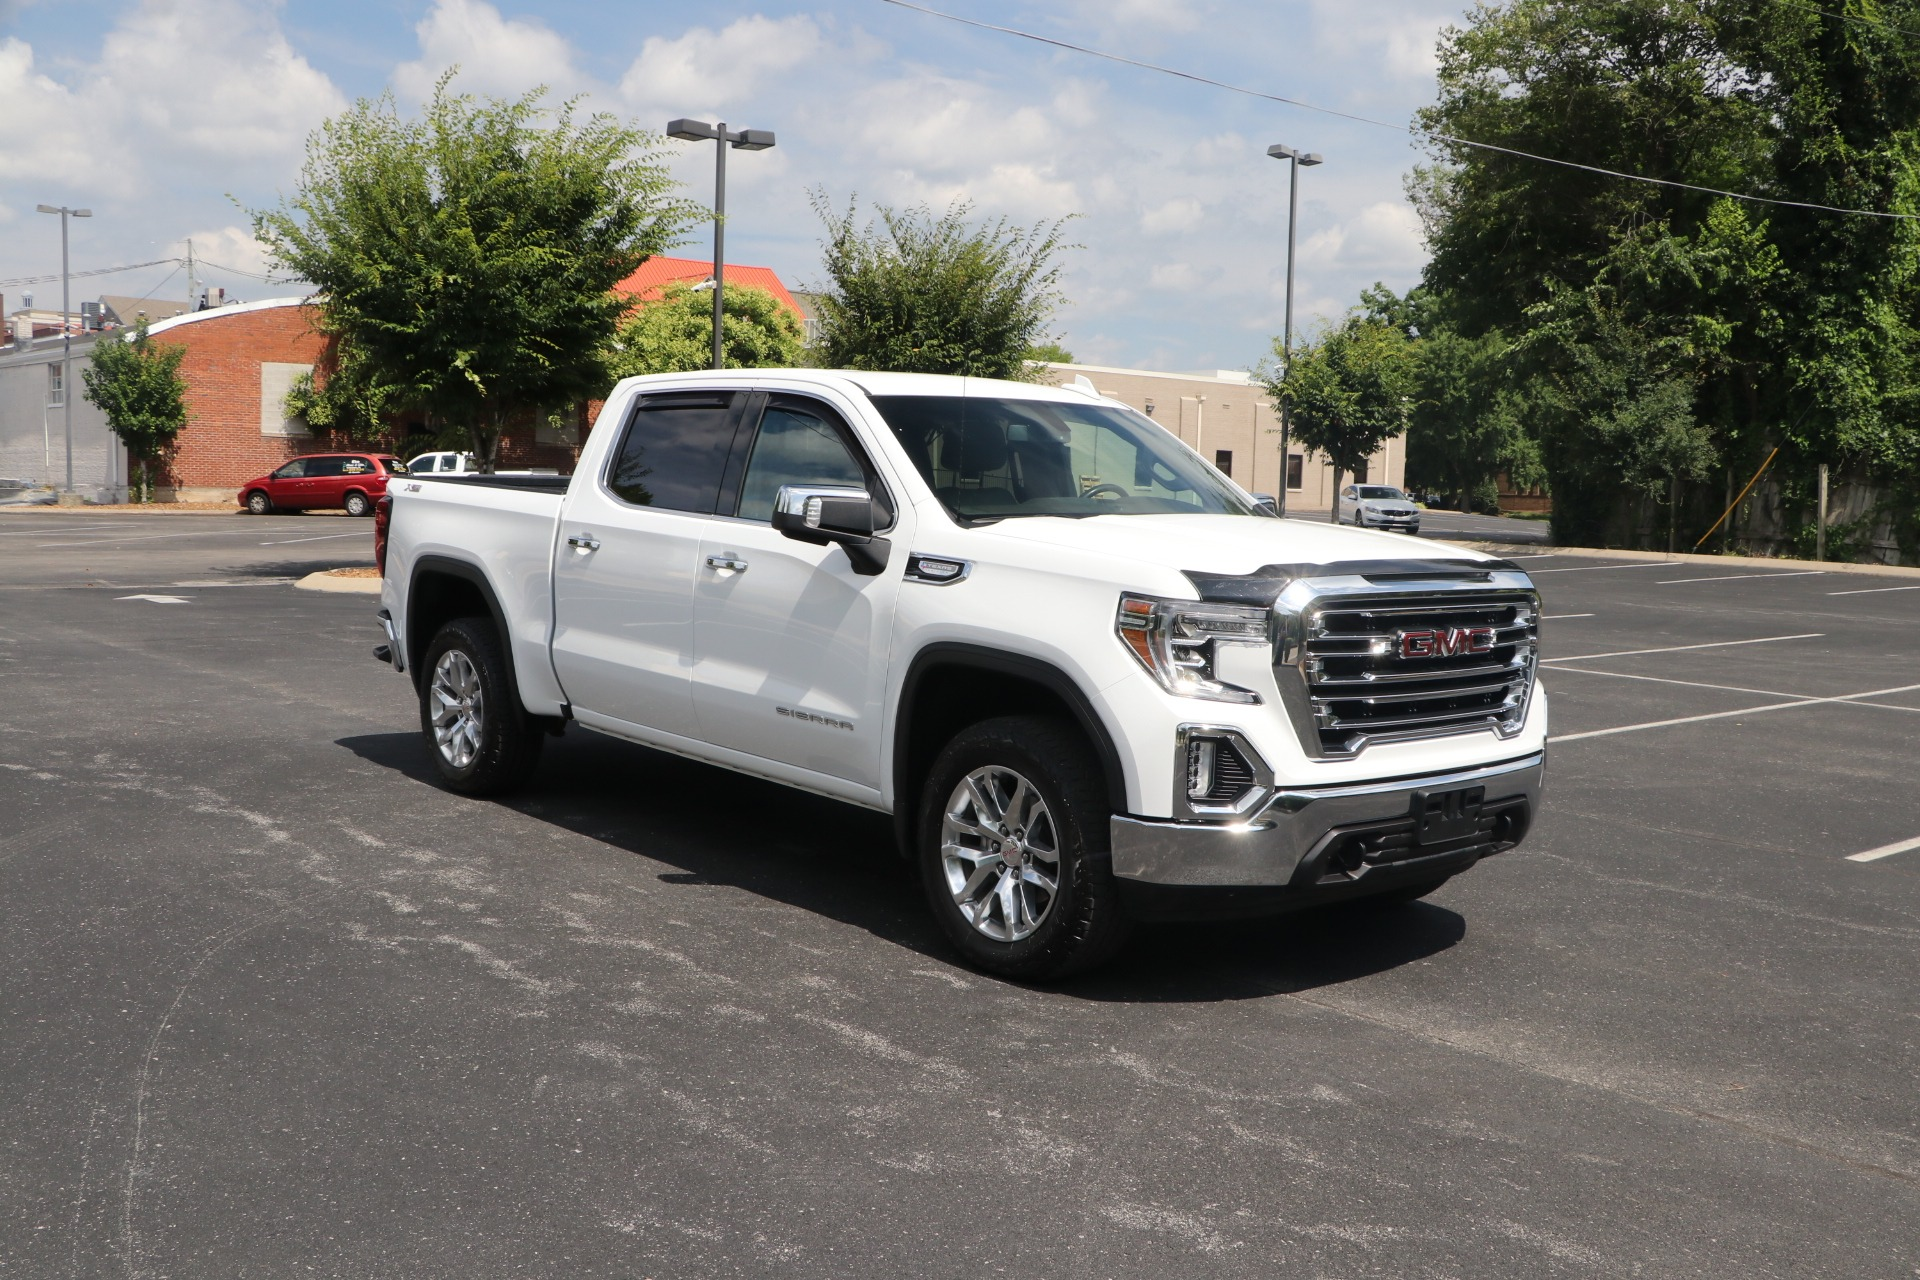 Used 2020 GMC Sierra 1500 SLT TEXAS EDITION X31 W/NAV for sale $56,500 at Auto Collection in Murfreesboro TN 37130 1